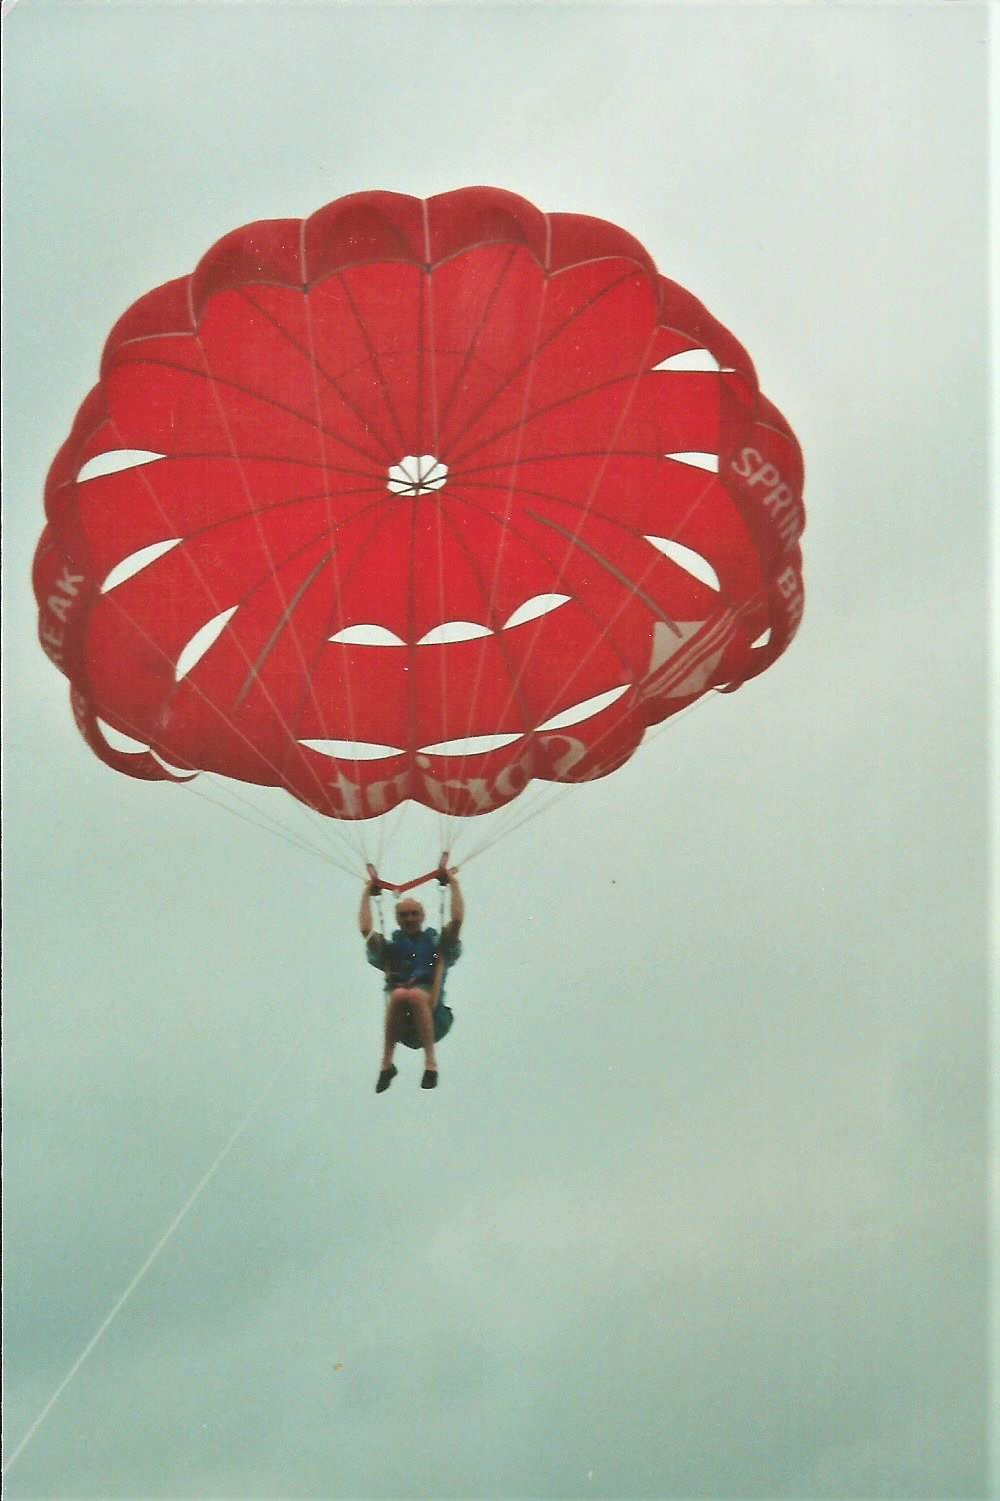 Ken tried everything -- even parasailing!